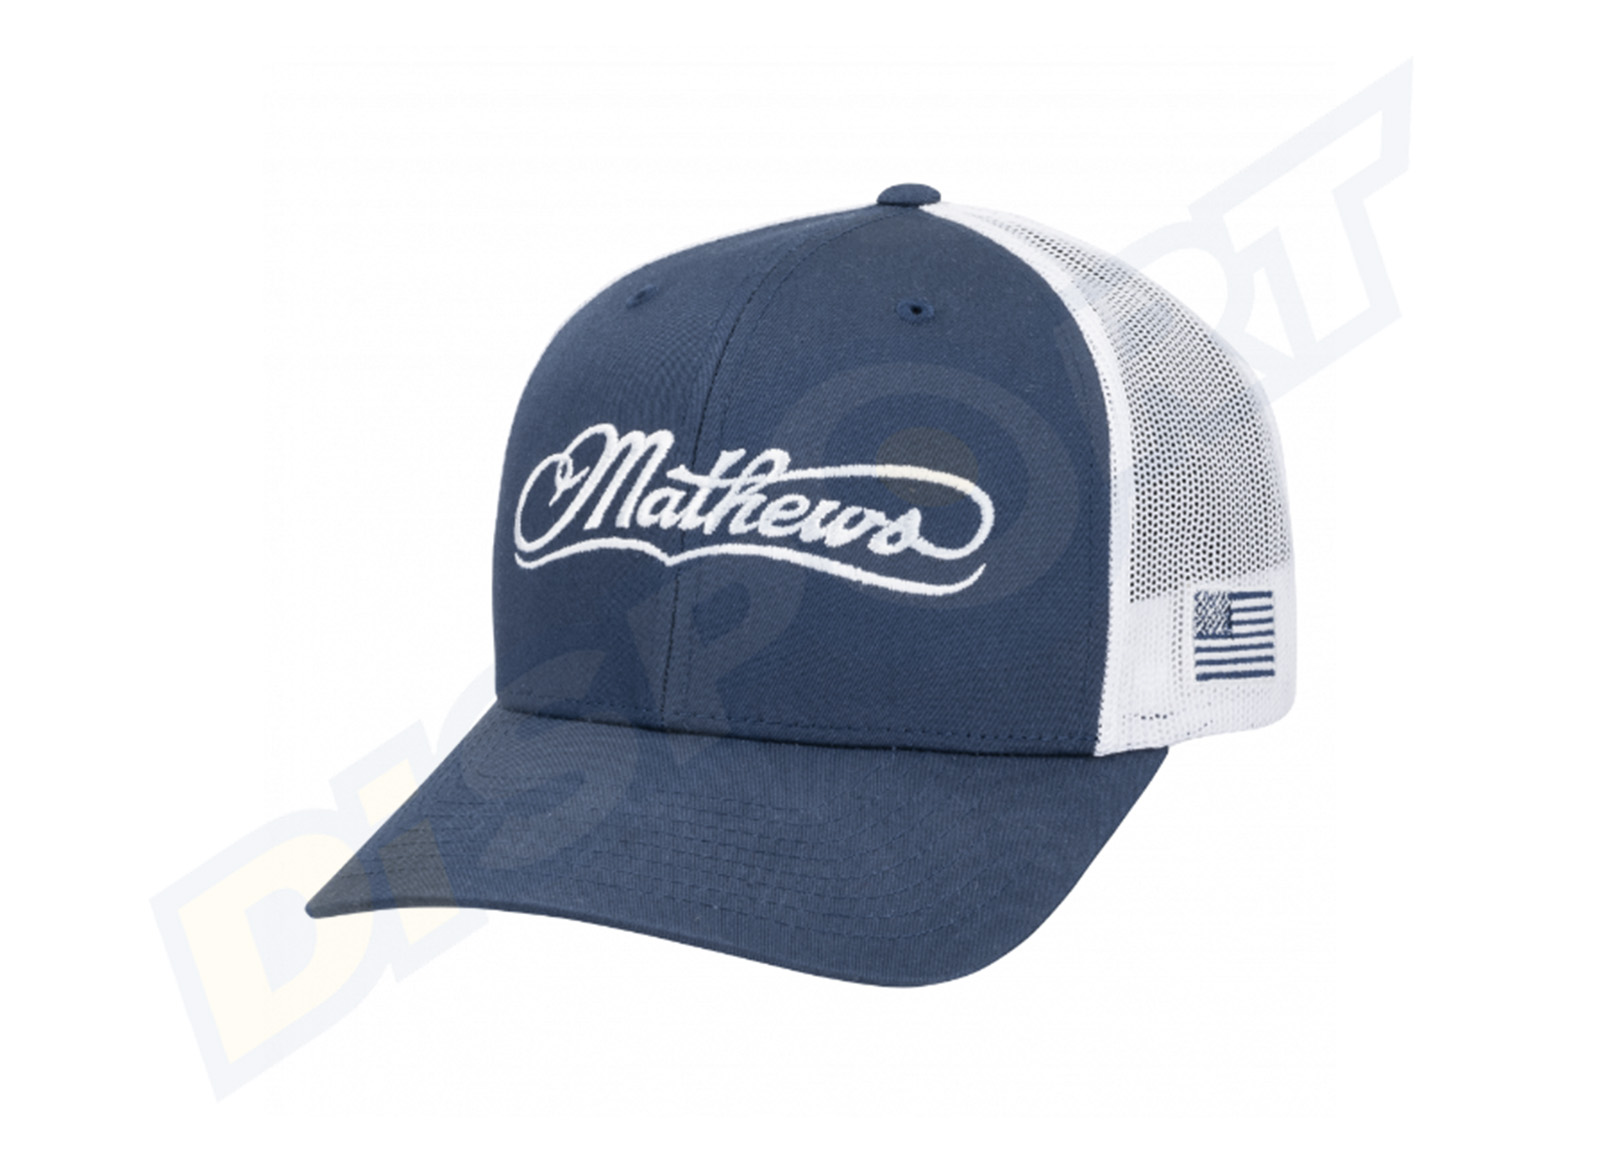 MATHEWS CAPPELLO USA